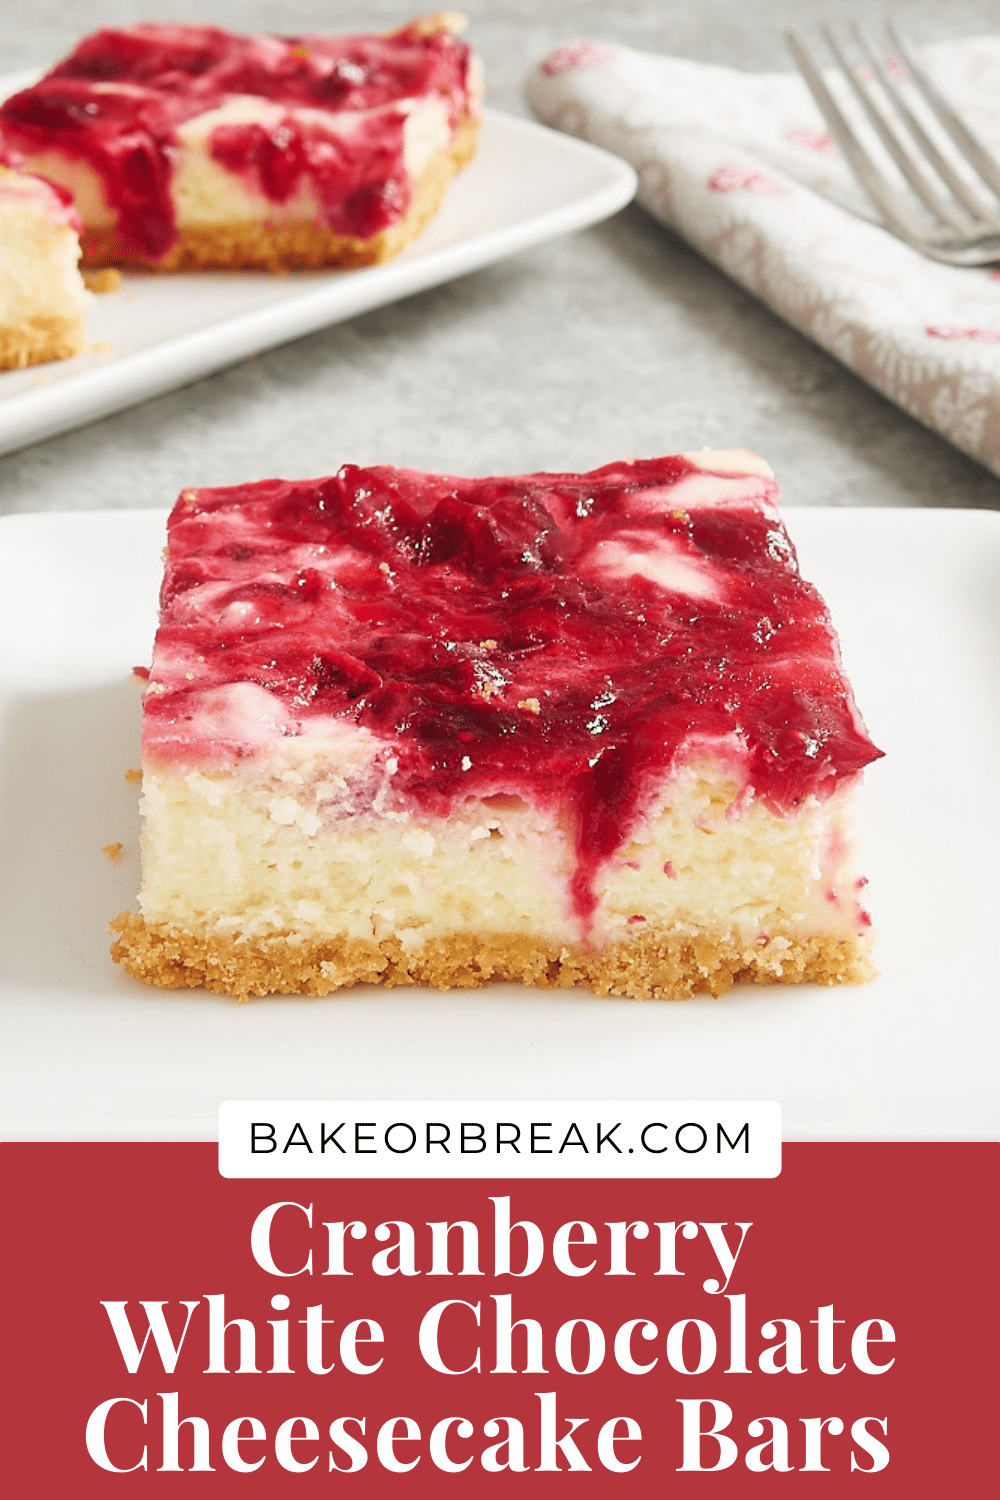 Cranberry White Chocolate Cheesecake Bars bakeorbreak.com